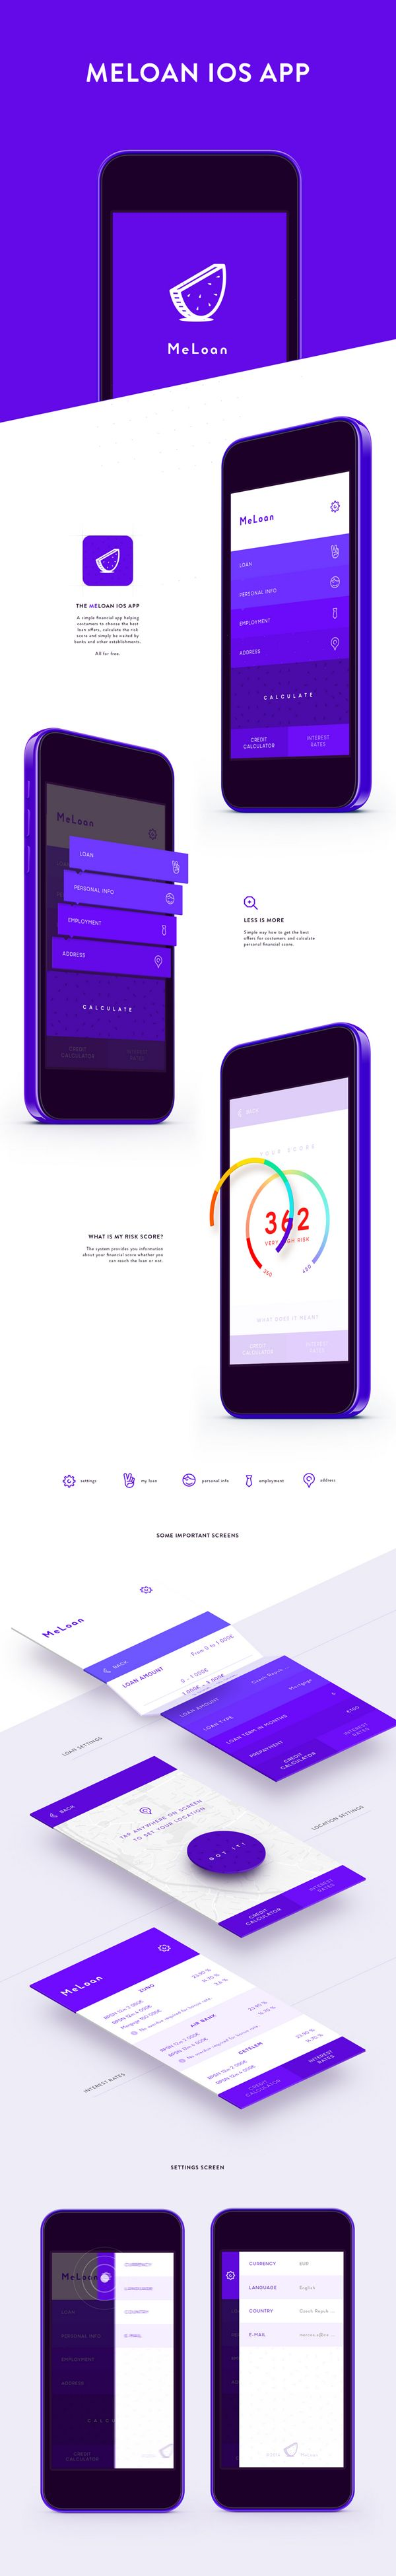 MeLoan Financial App for iOS.  Design and UX by CREATIVE KNIGHT.  http://www.creative-knight.com/  #creativeknight #creativenights #app #design #meloan